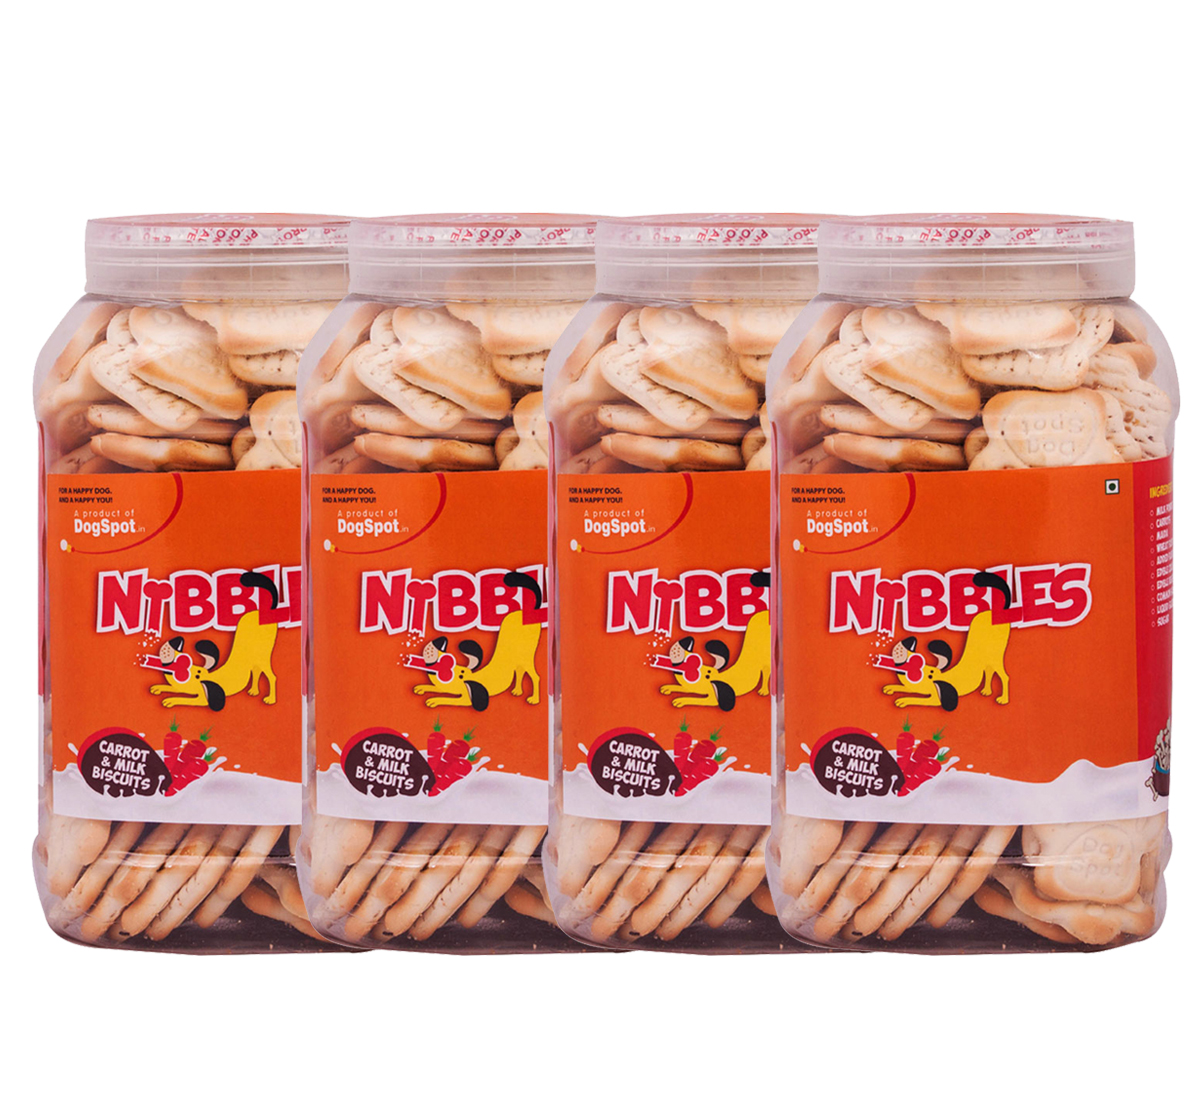 Nibbles Carrot & Milk Dog Biscuit - 500 gm(Pack Of 4)